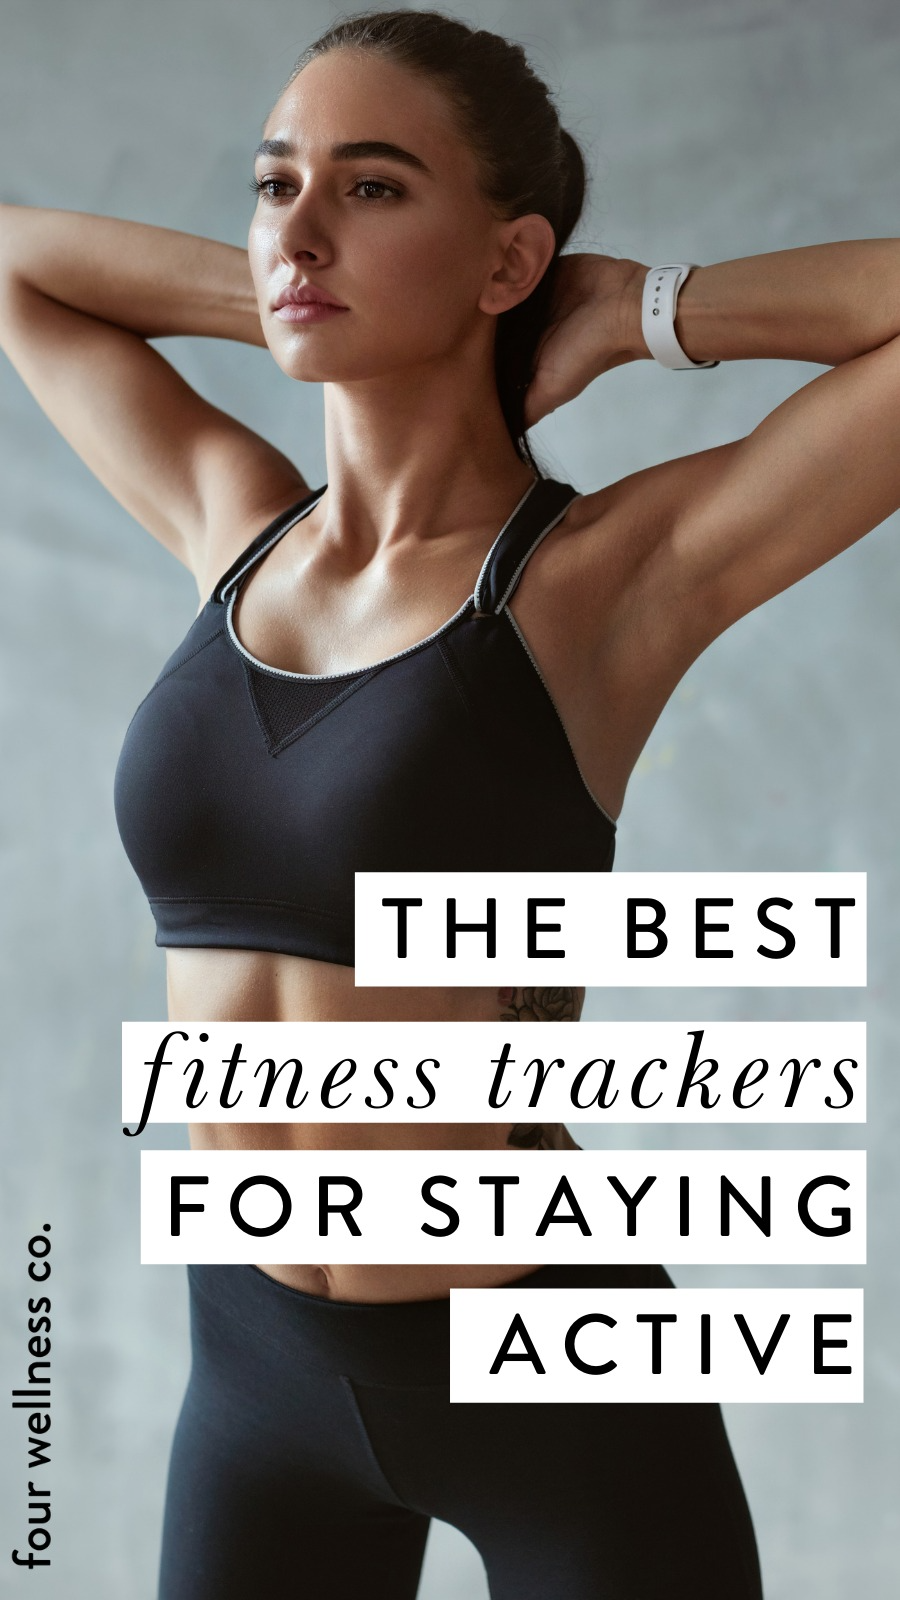 The Best Fitness Trackers for Staying Active in 2021